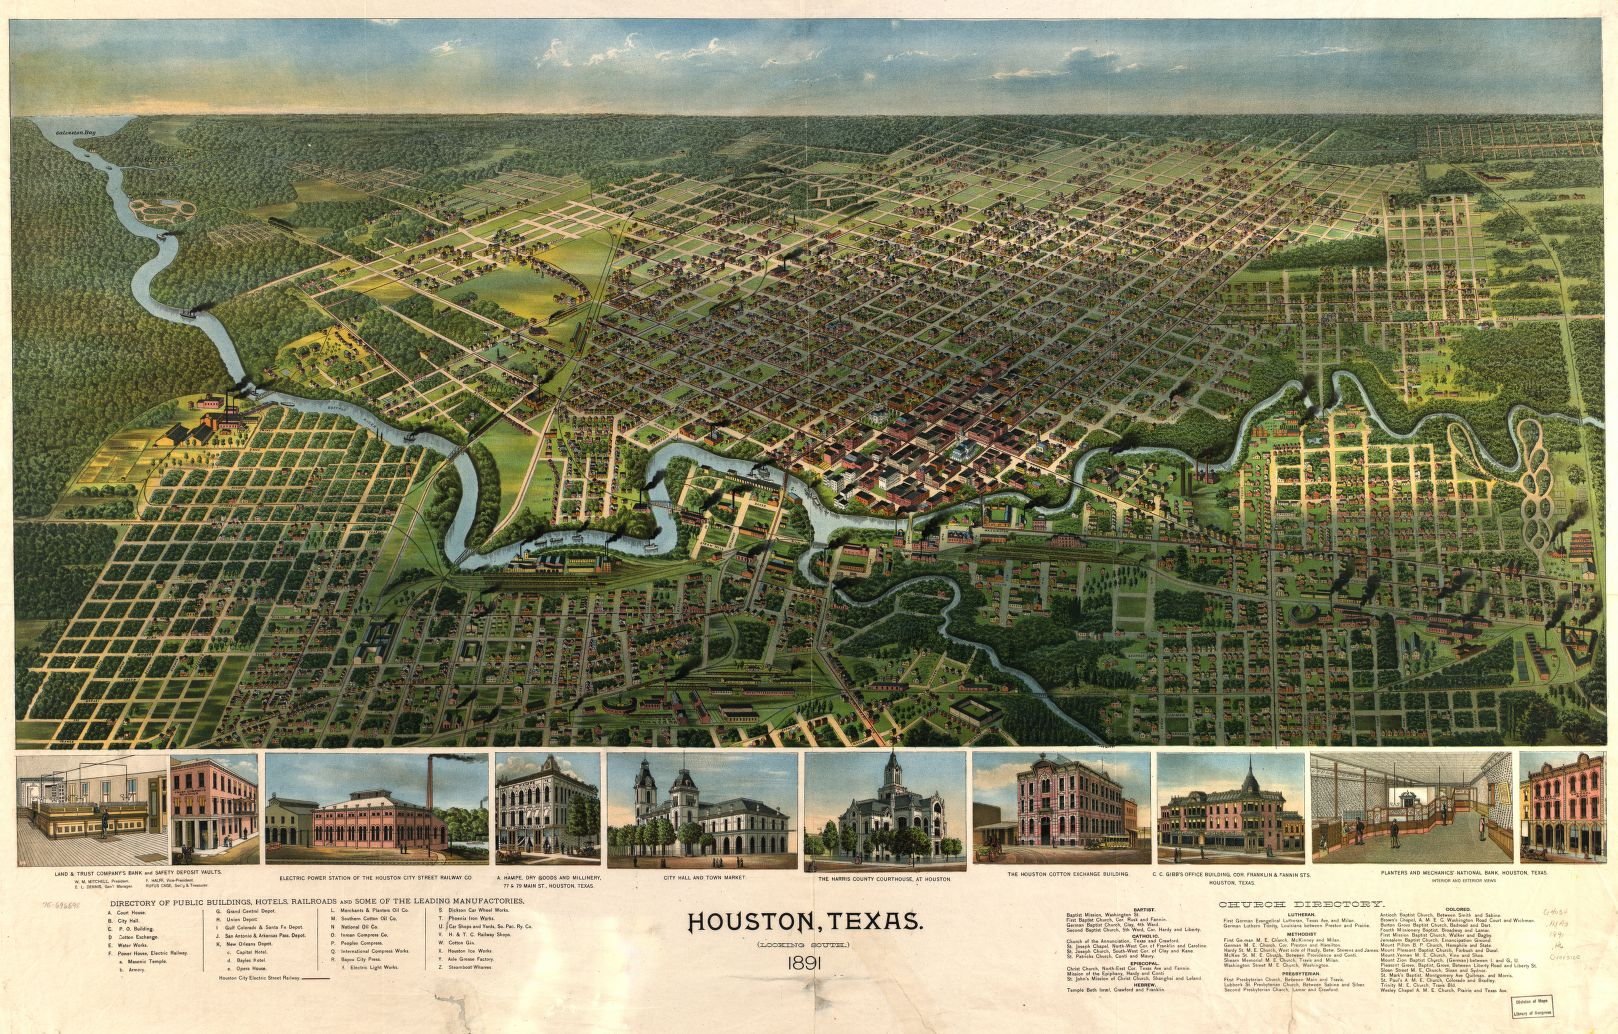 Map Of Texas Early 1800s.Library Of Congress Maps Show An Aerial View Of Early Texas